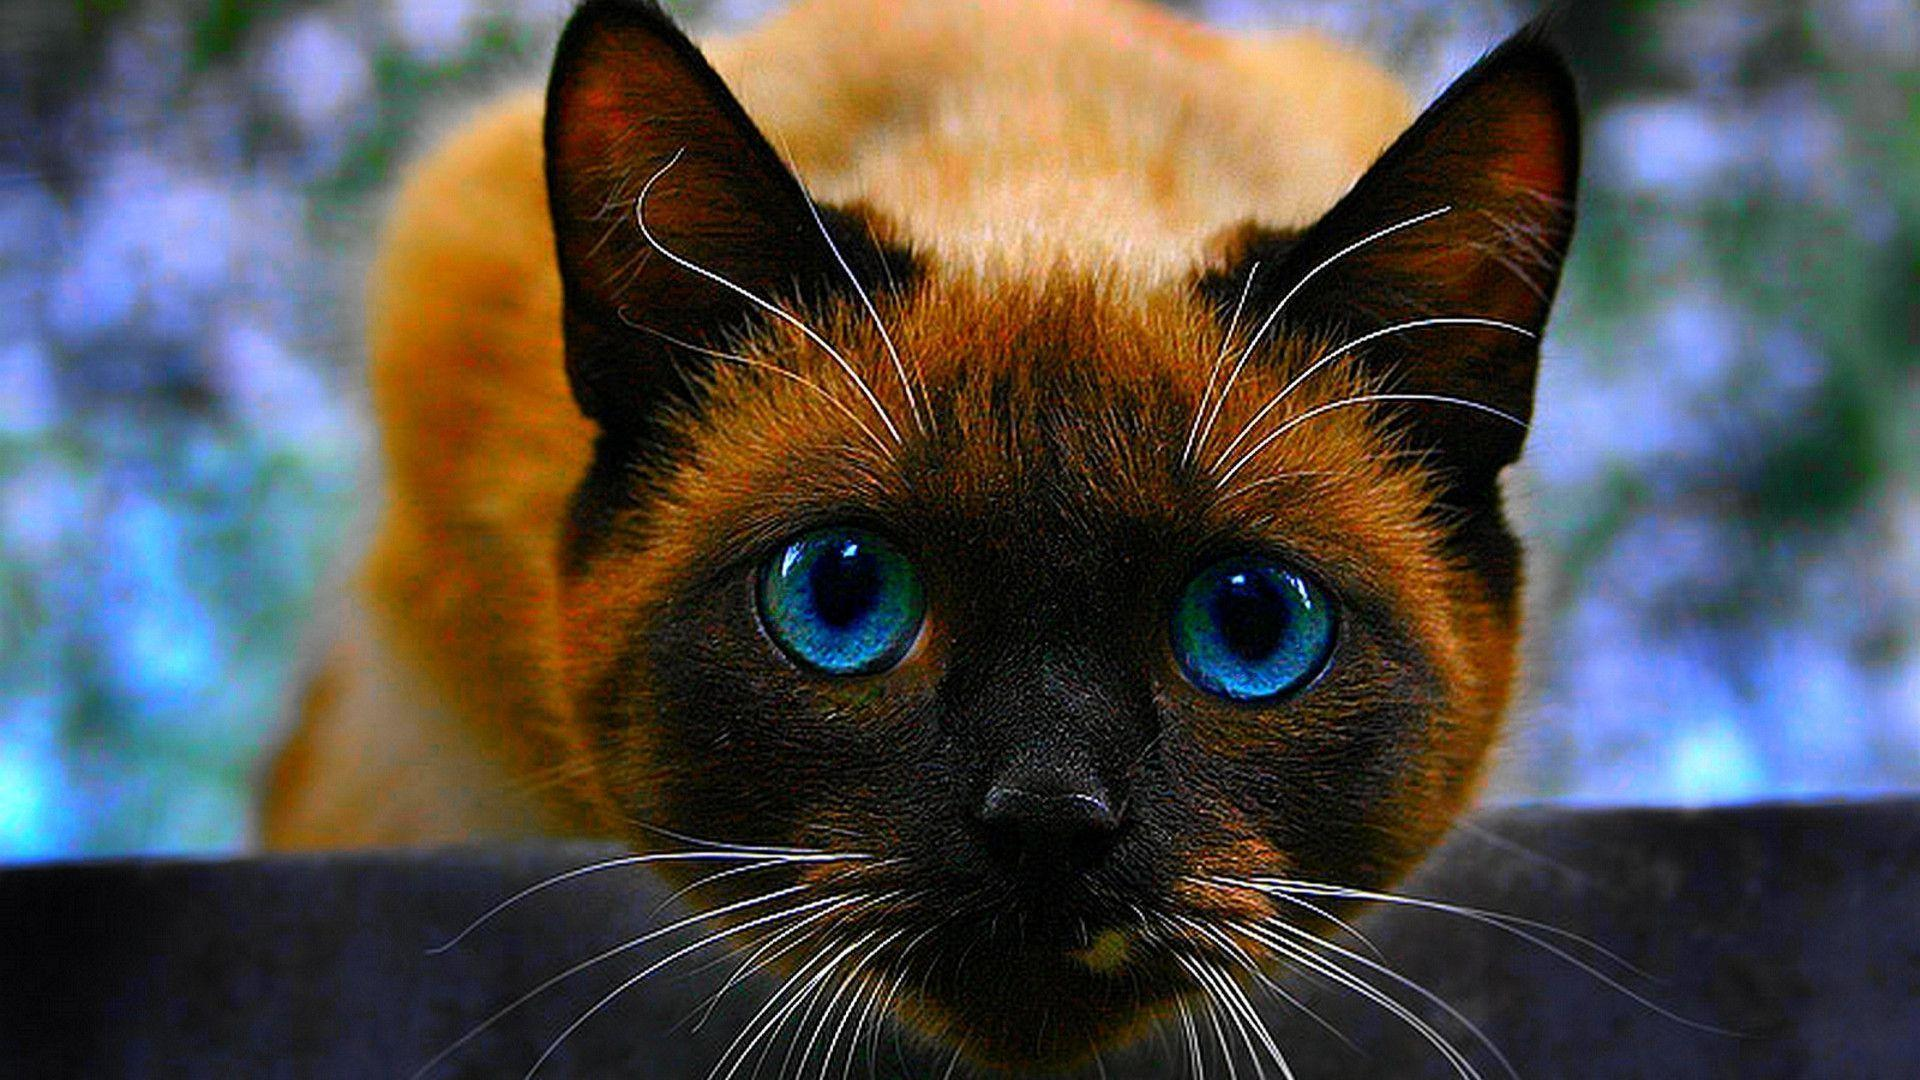 Hd Cat Wallpapers 1920x1080 69 Images: Siamese Cat Wallpapers